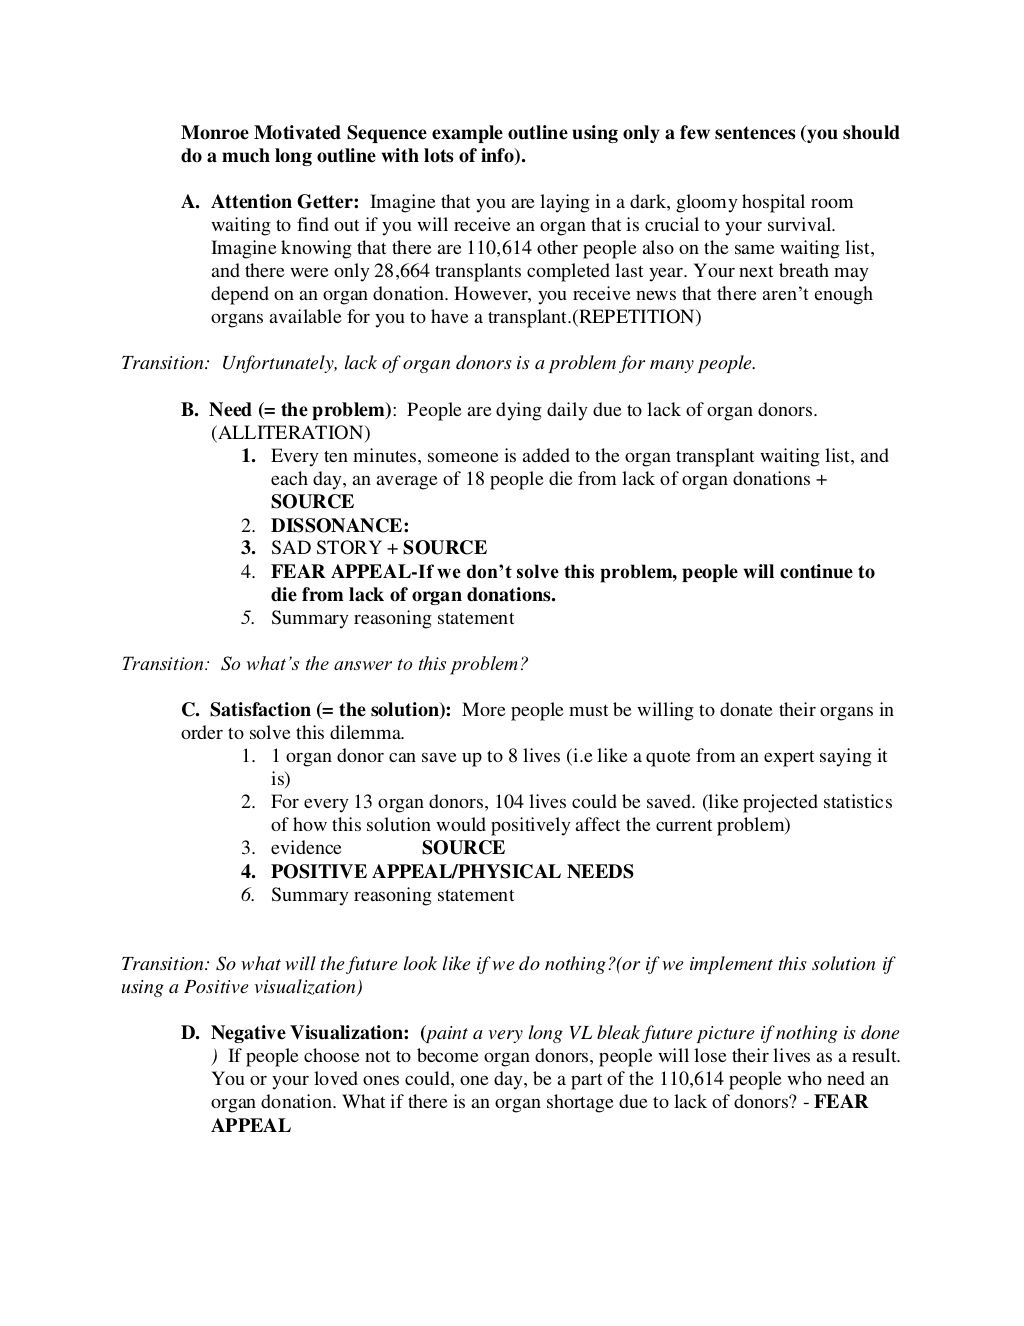 New Persuasive Speech Outline By Brianna Abc Via Slideshare  New Persuasive Speech Outline By Brianna Abc Via Slideshare Essay Papers Examples also Online Writing Lab Purdue University  Essay Sample For High School